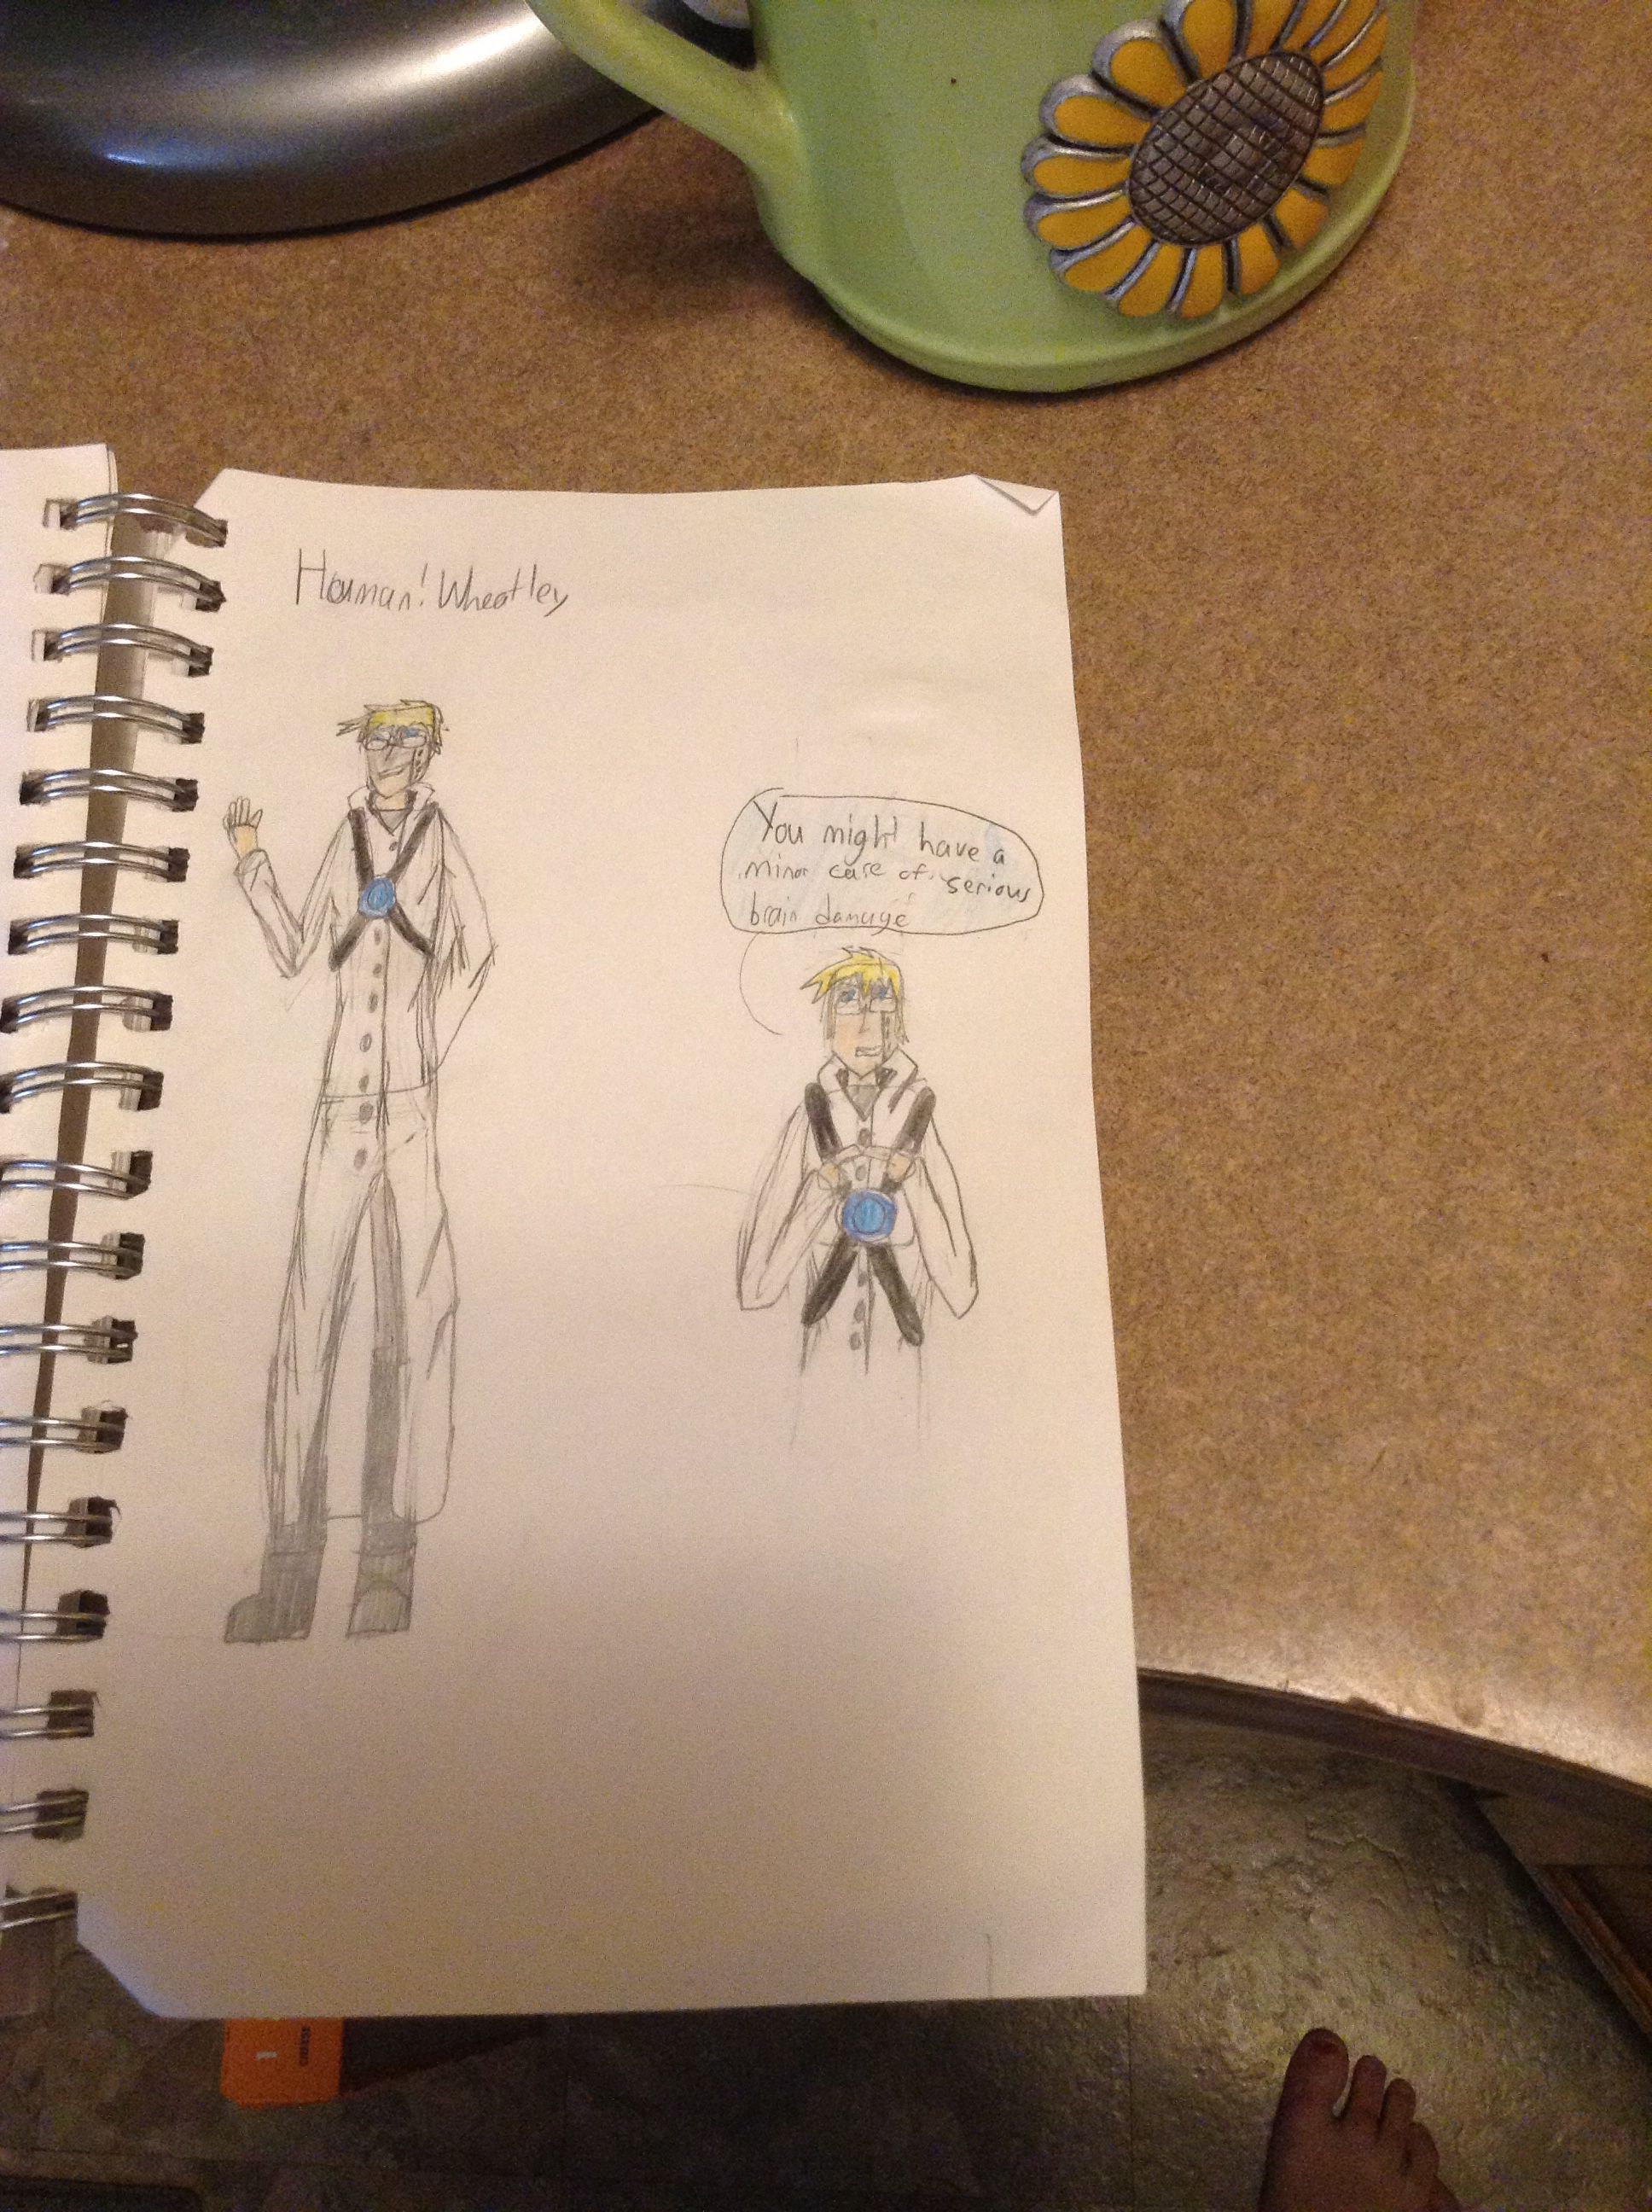 Here Is My Design For A Human Wheatley Wheatley Human